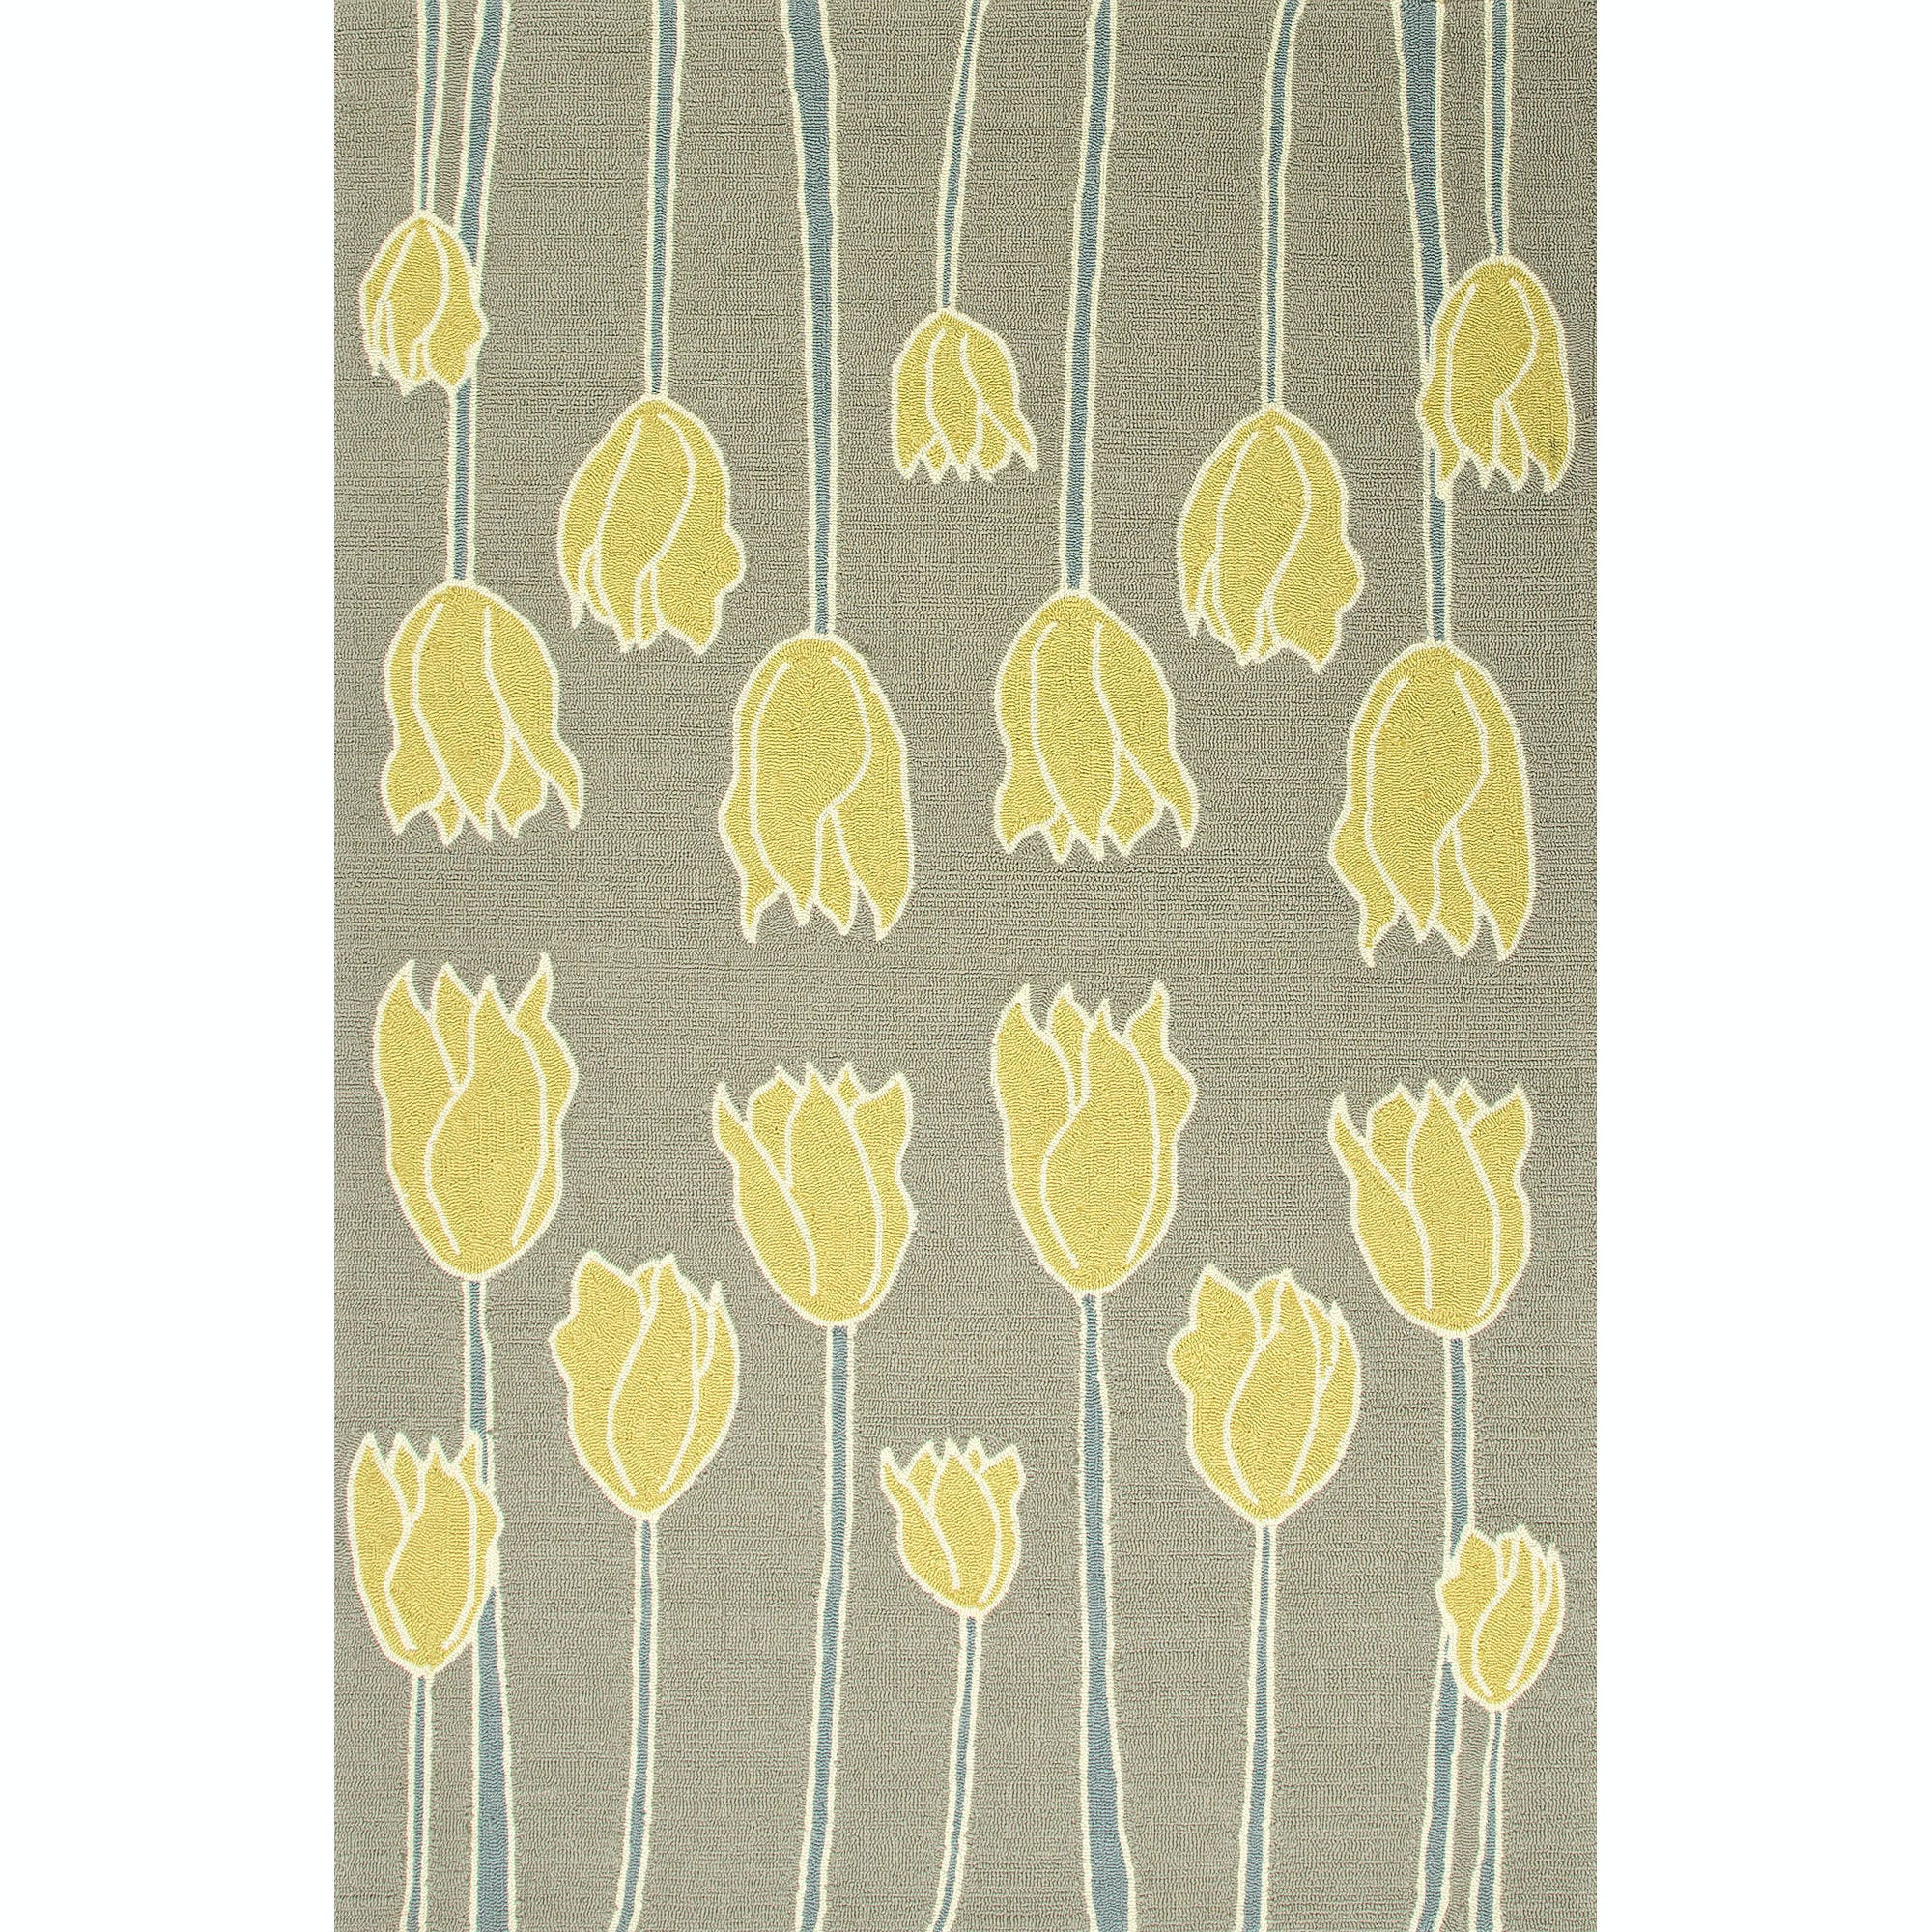 Picture of: Jaipur Rugs Indoor Outdoor Durable Polypropylene Gray Yellow Area Rug 5×7 6 Rug108080 In Newnan